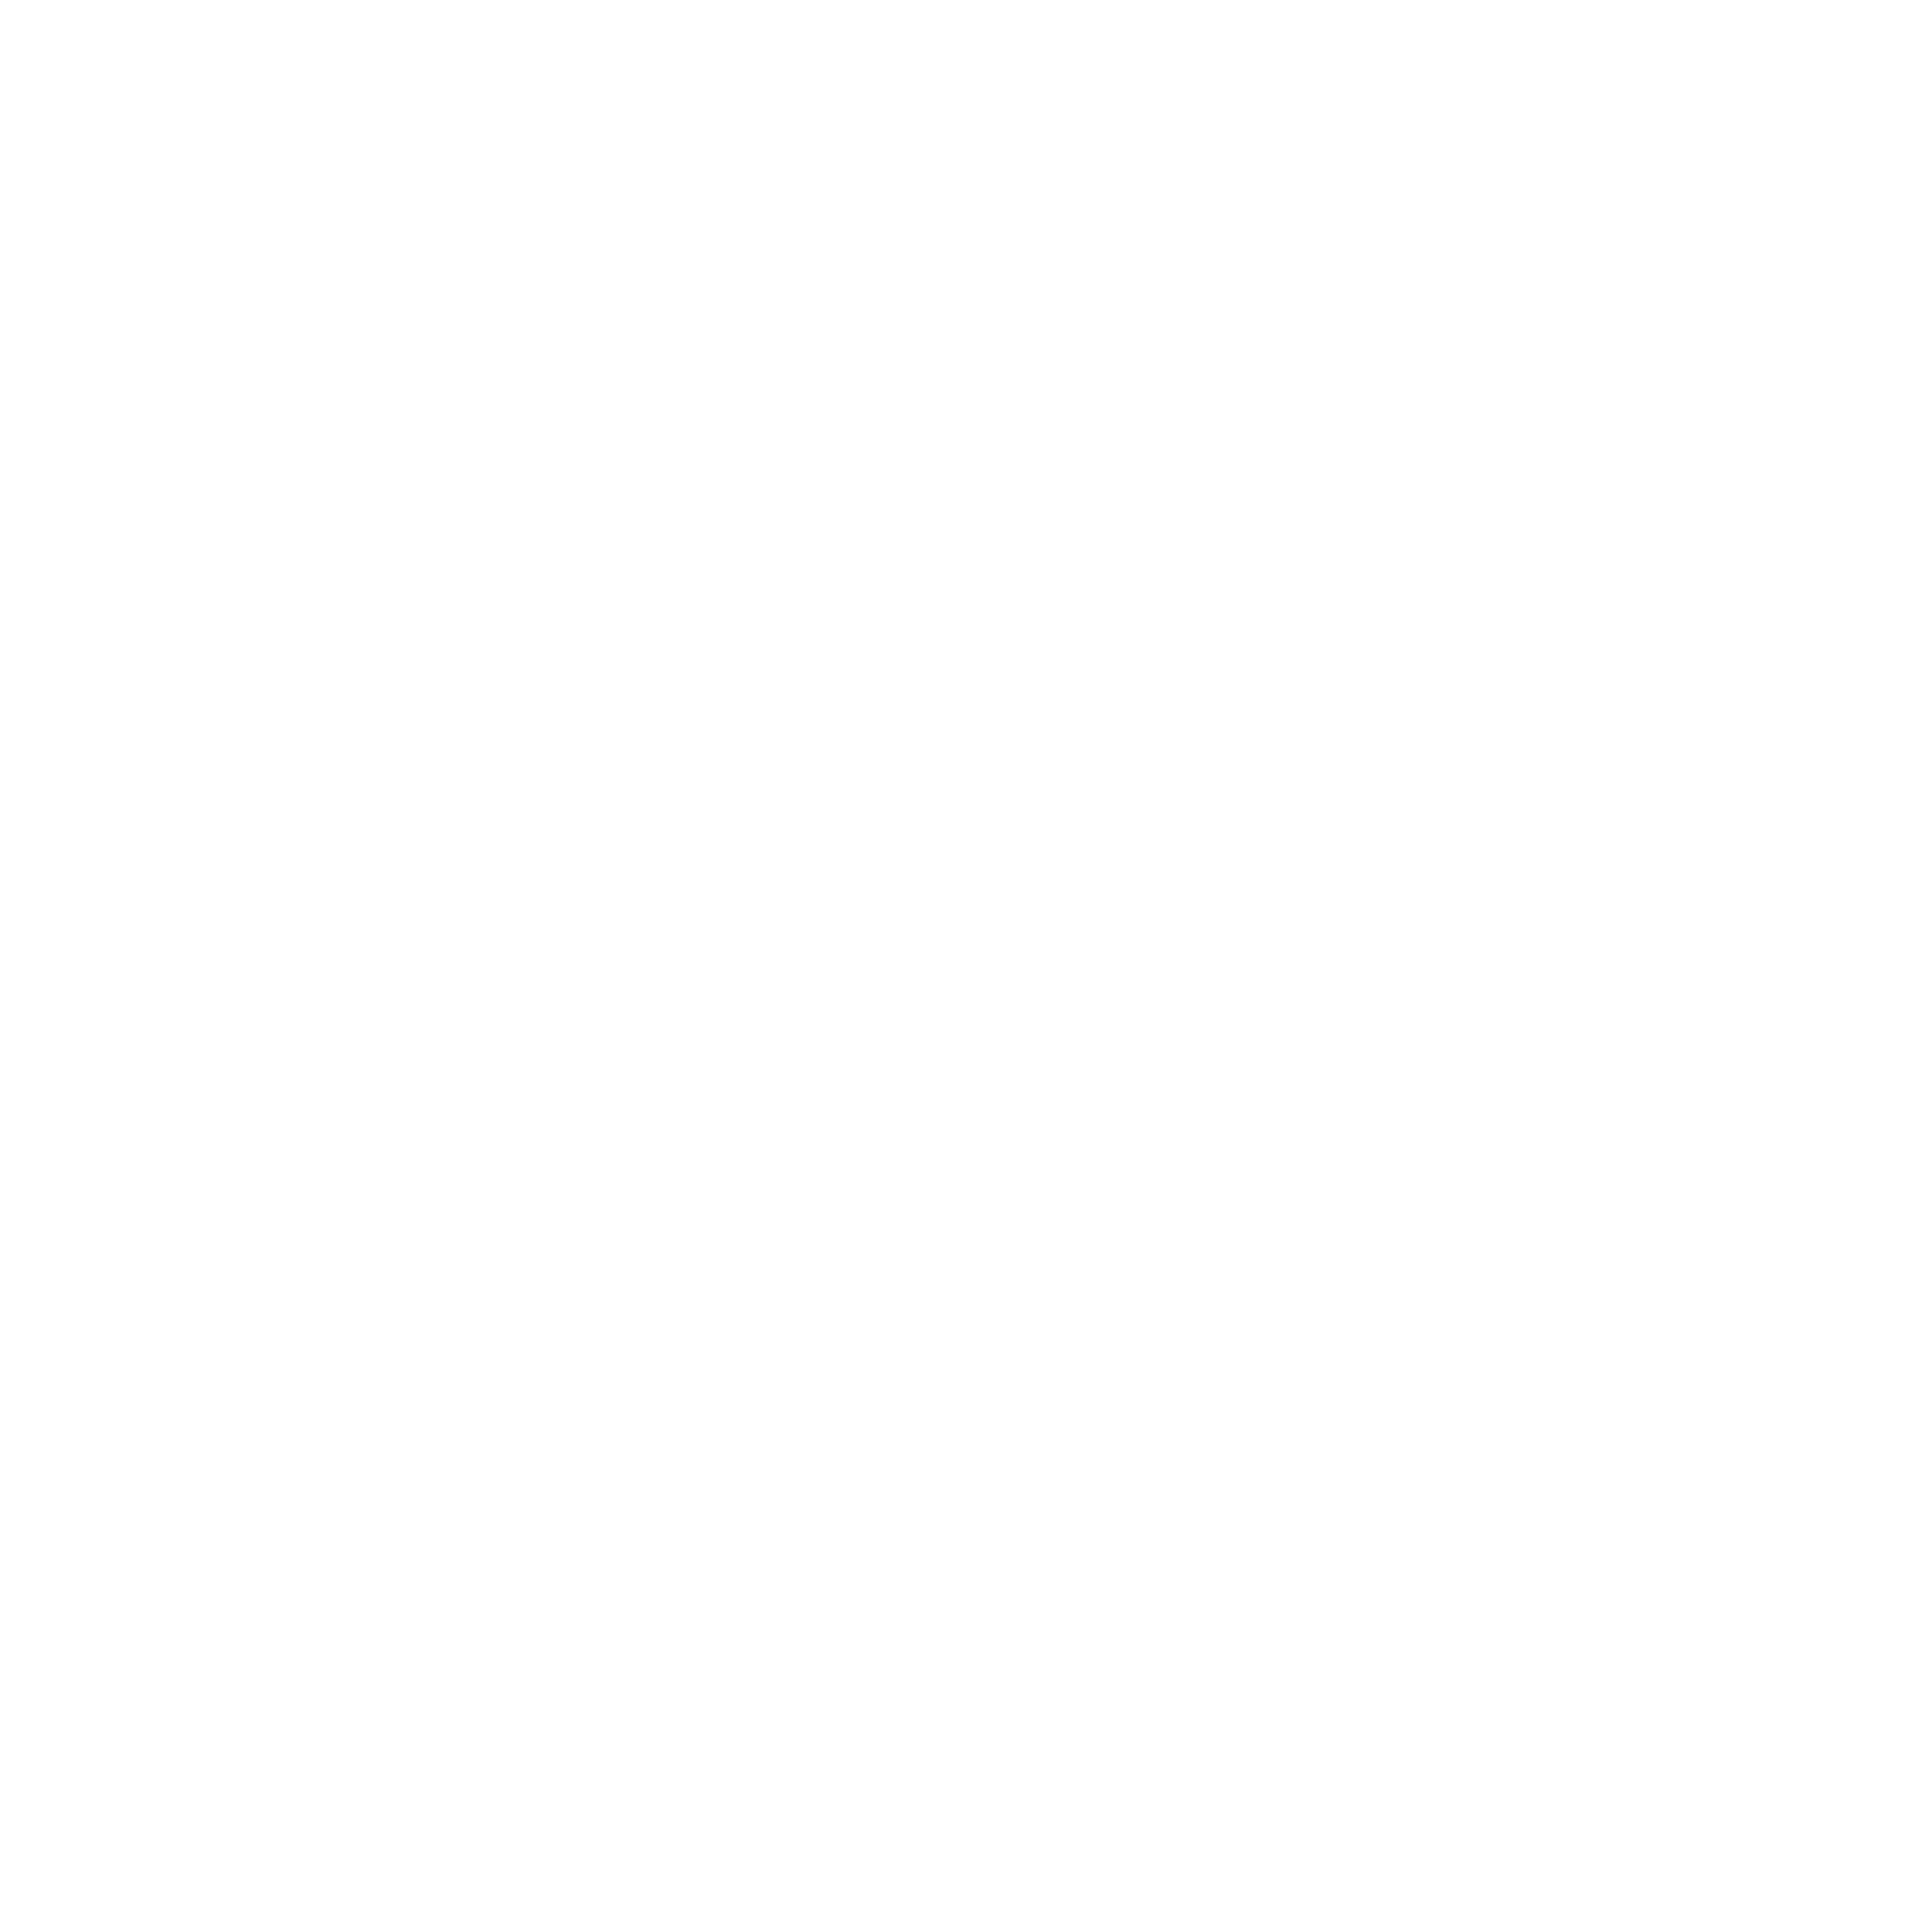 precious metals international white logo